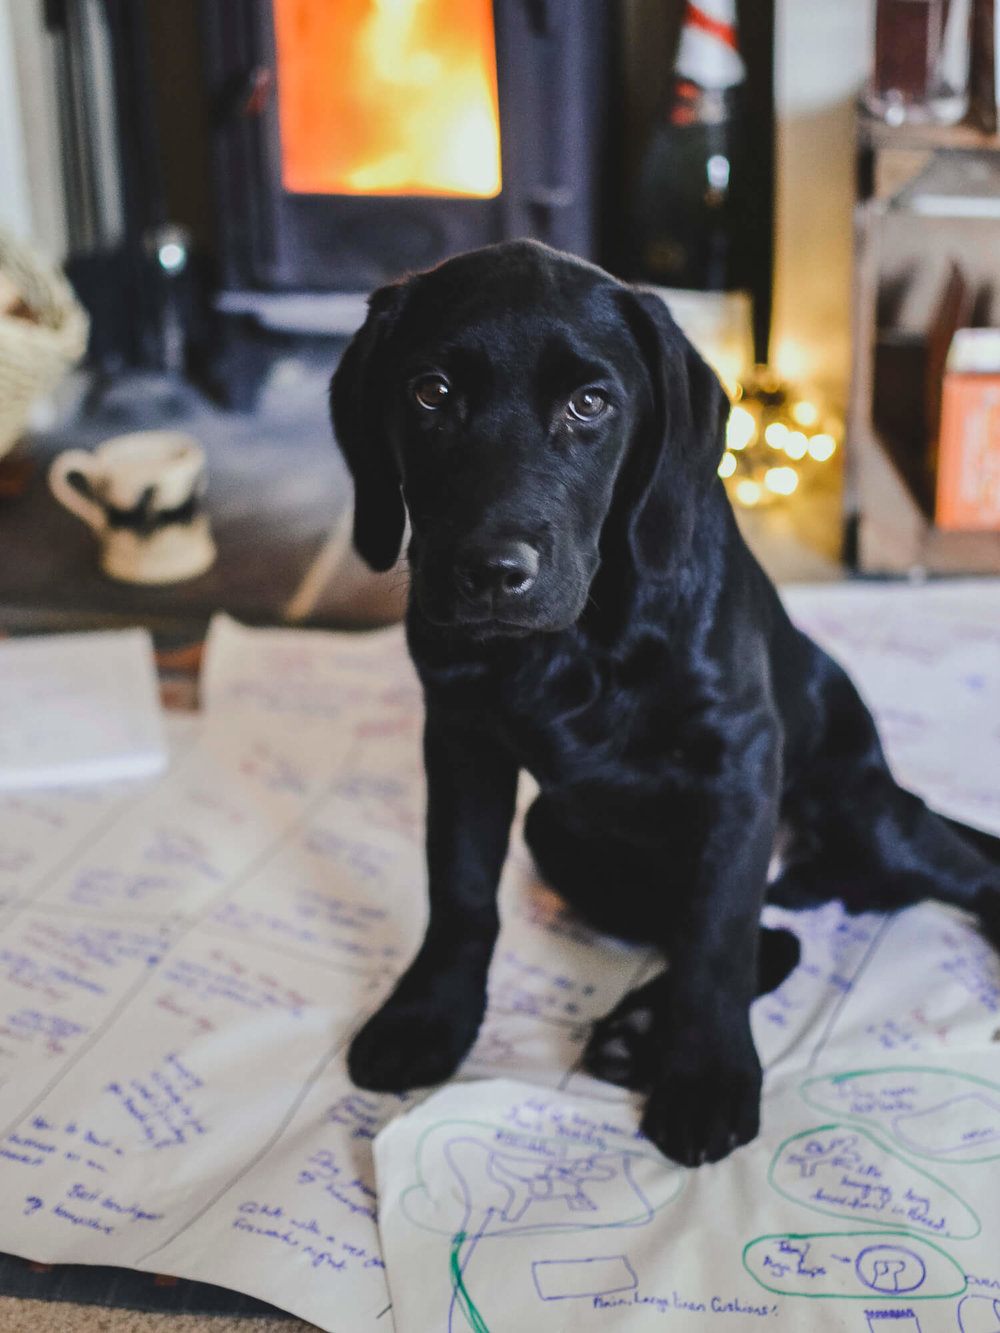 Black Labrador puppy sat by a log burner